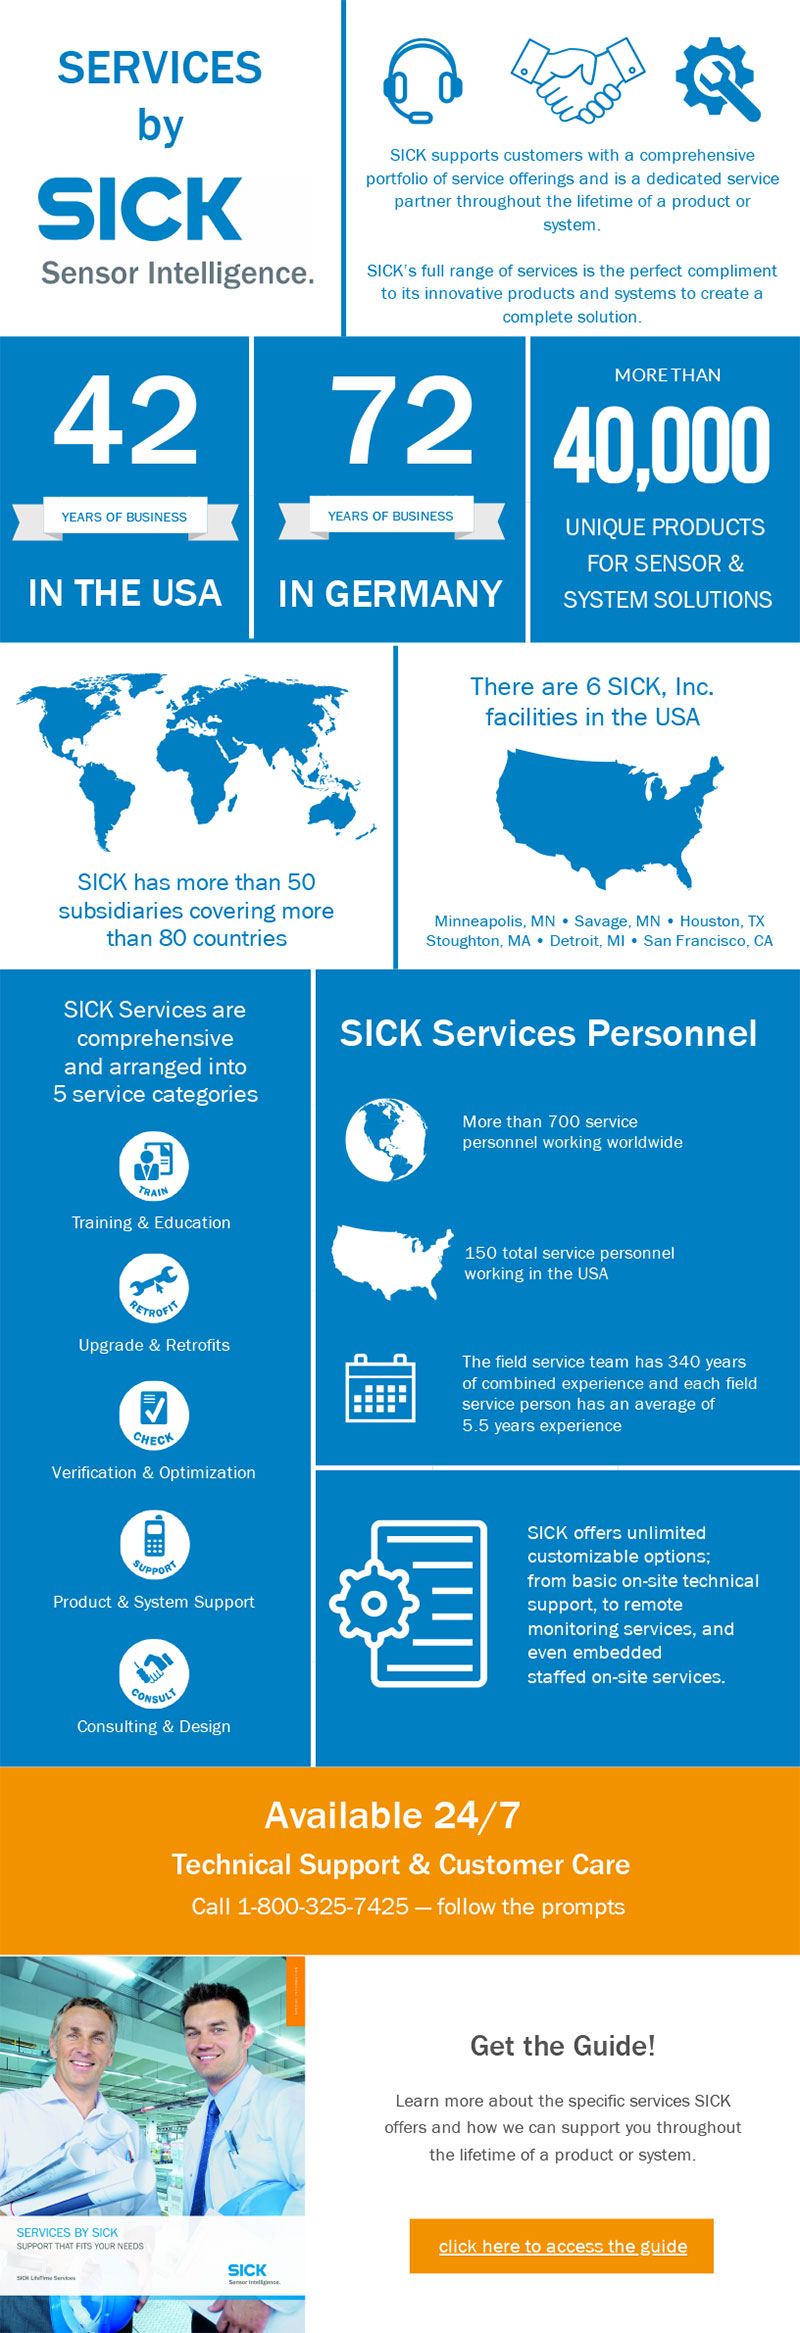 SICK Services, Five Comprehensive Services from SICK